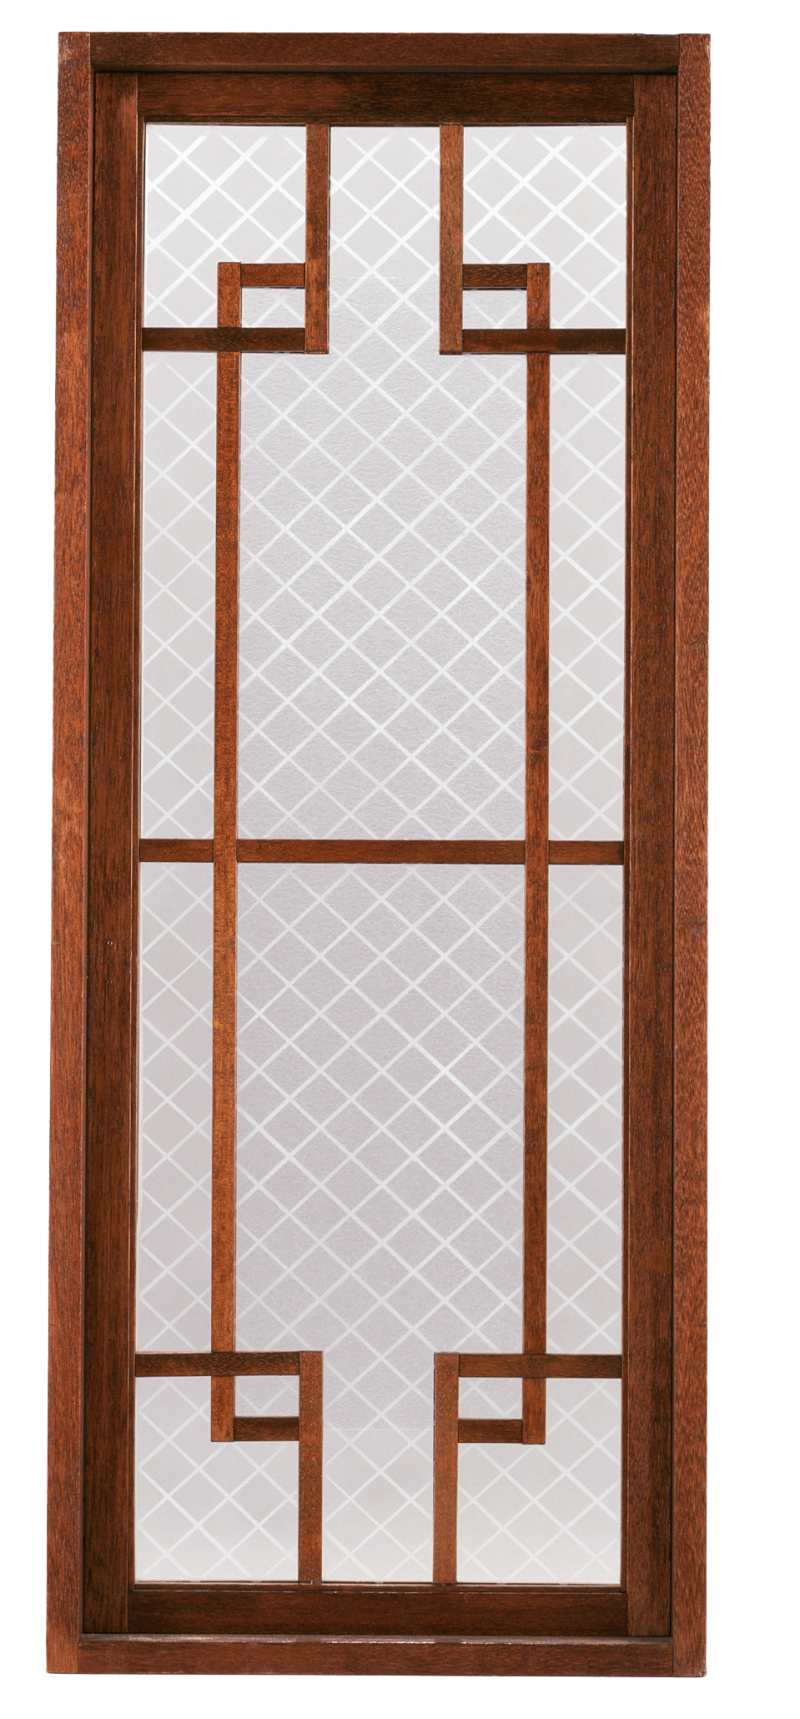 Glass and Wooden Door PNG Image